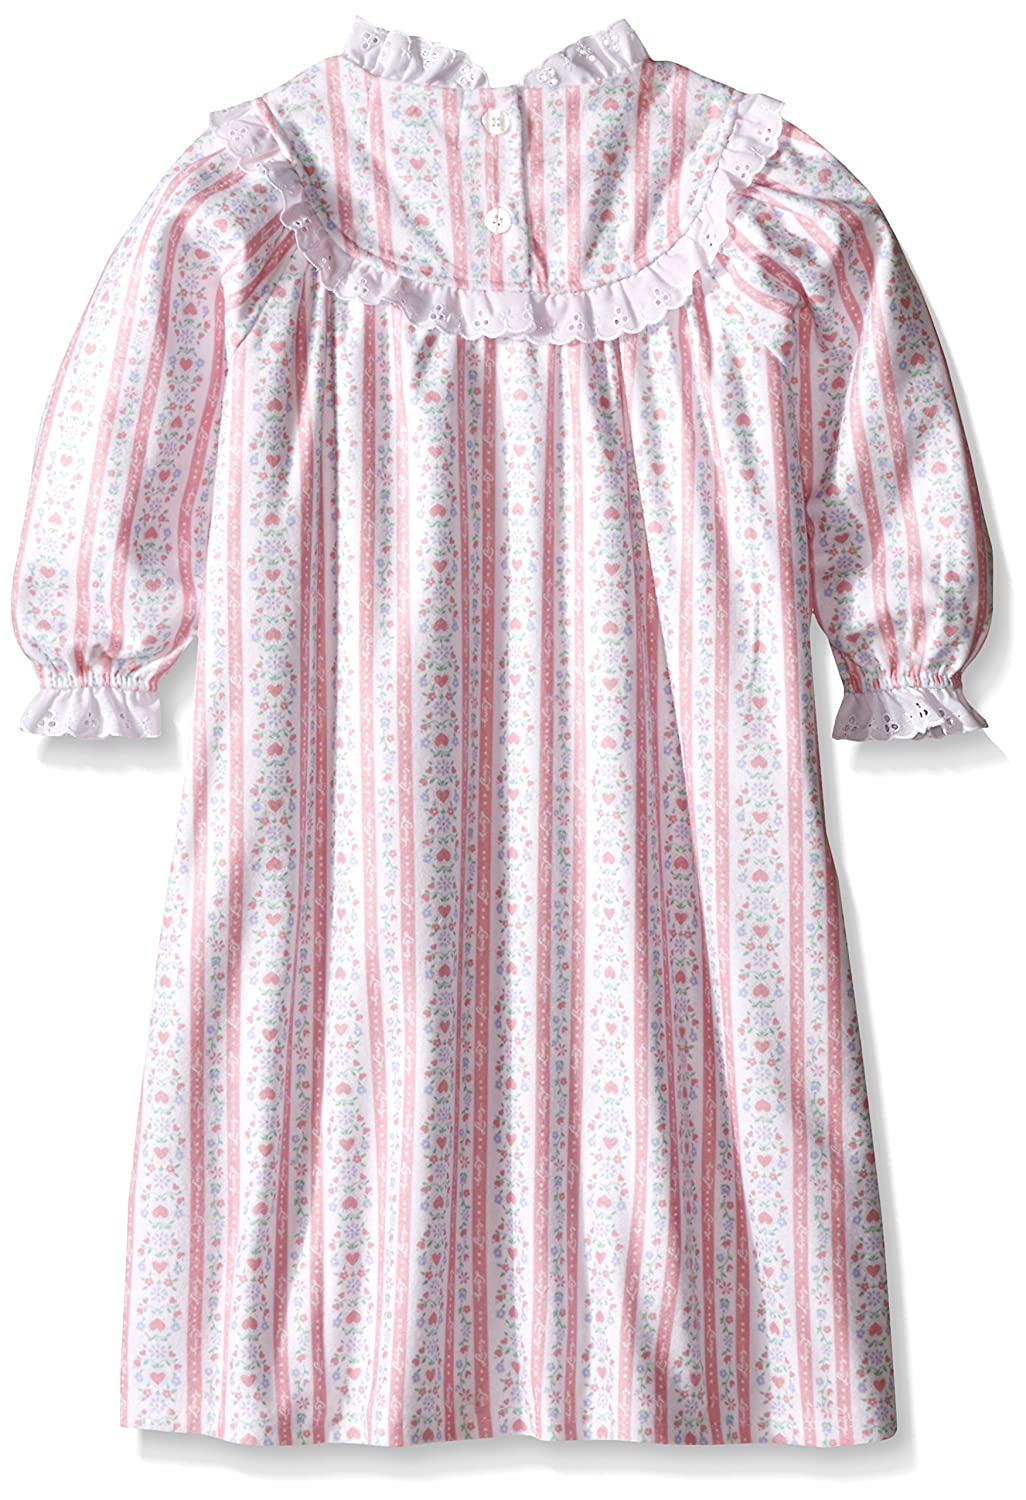 Lanz of Salzburg Tyrolean Flannel Nighty for Girls Toddler Sizes 2T-4T